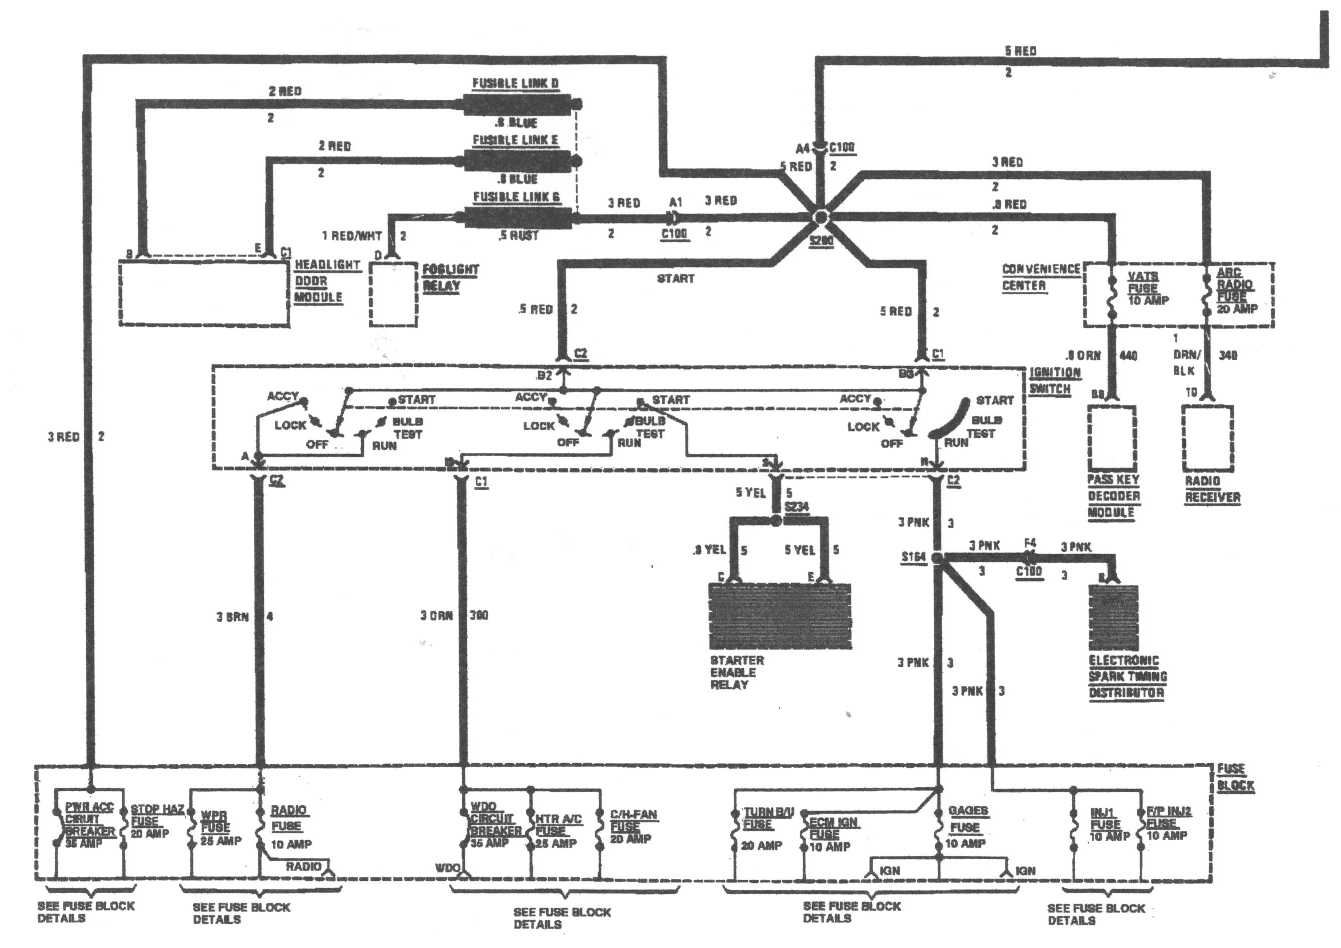 powerdistro 1980 el camino wiring diagram 1969 el camino wiring diagram power window wiring harness 1998 chevy truck at gsmportal.co